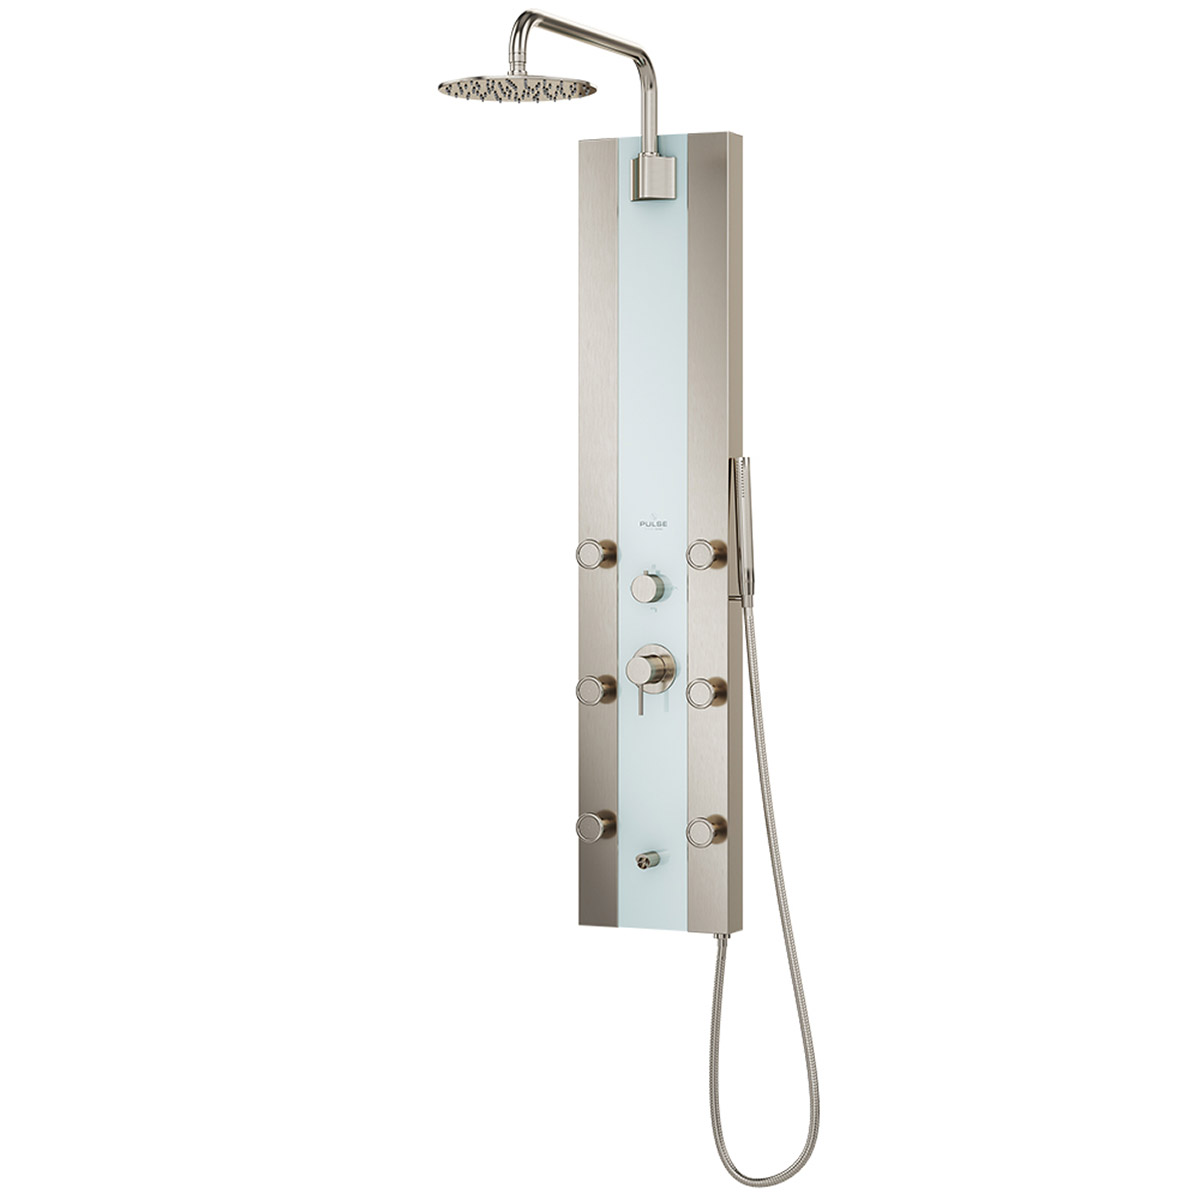 PULSE ShowerSpas Tropicana ShowerSpa White Glass Shower Panel